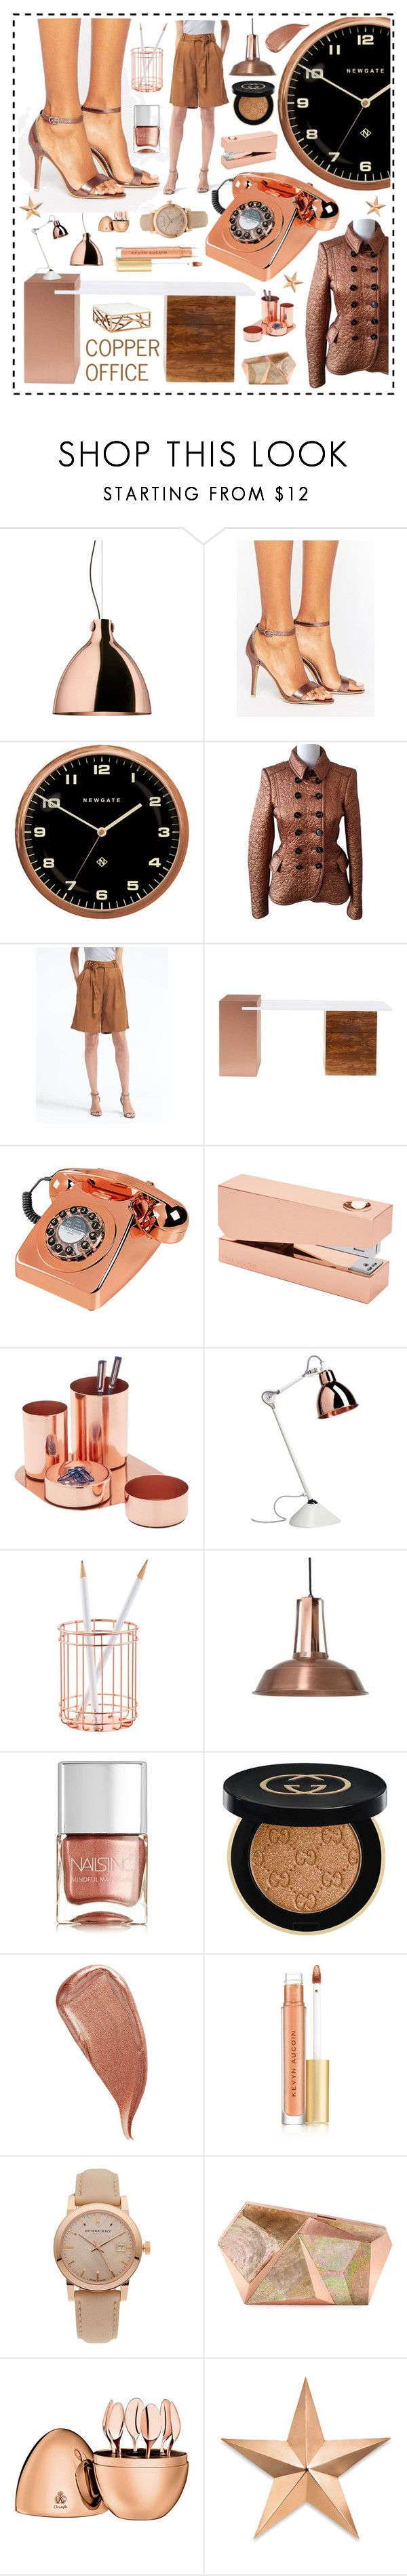 """""""Copper office"""" by beanpod ❤ liked on Polyvore featuring Ghidini 1961, Glamorous, Newgate, Burberry, Banana Republic, Wild & Wolf, Tom Dixon, Hare & Wilde, Nails Inc. and Gucci"""